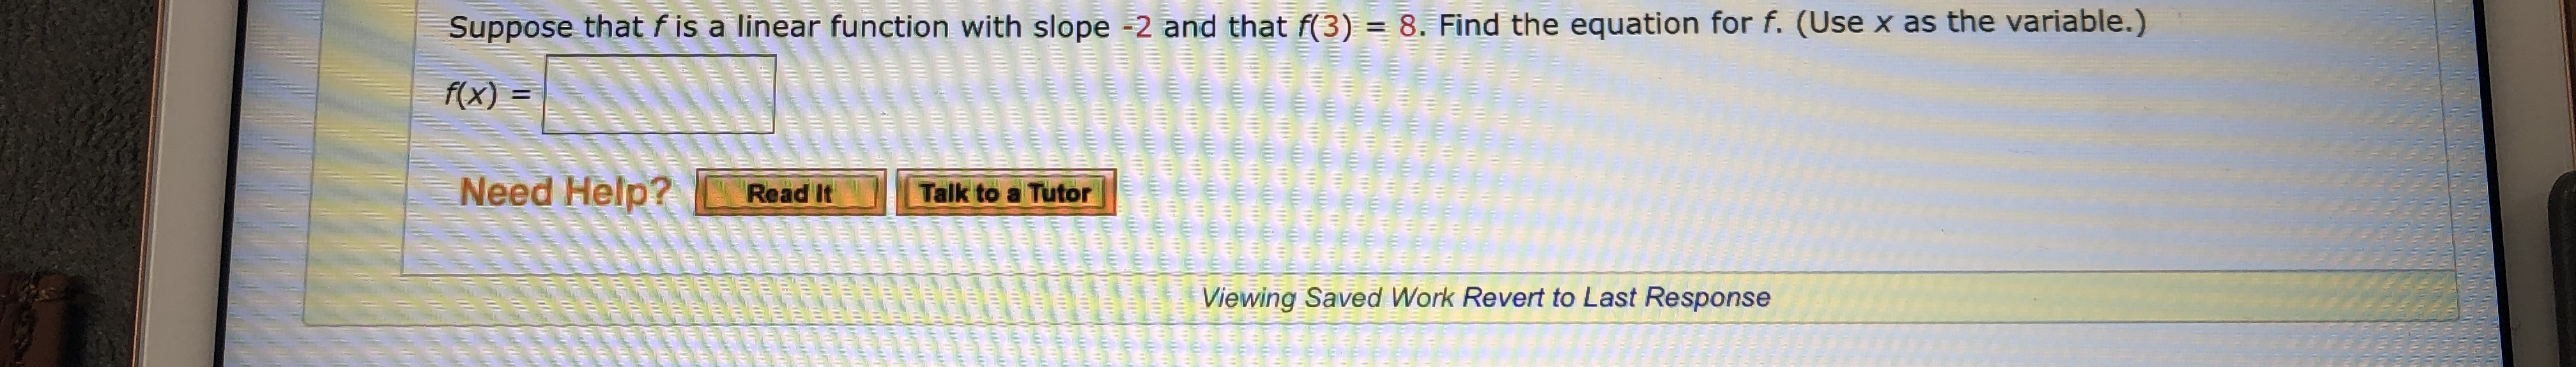 Suppose that f is a linear function with slope -2 and that f(3) = 8. Find the equation for f. (Use x as the variable.) f(x) pooG Need Help? Talk to a Tutor Read It Viewing Saved Work Revert to Last Response